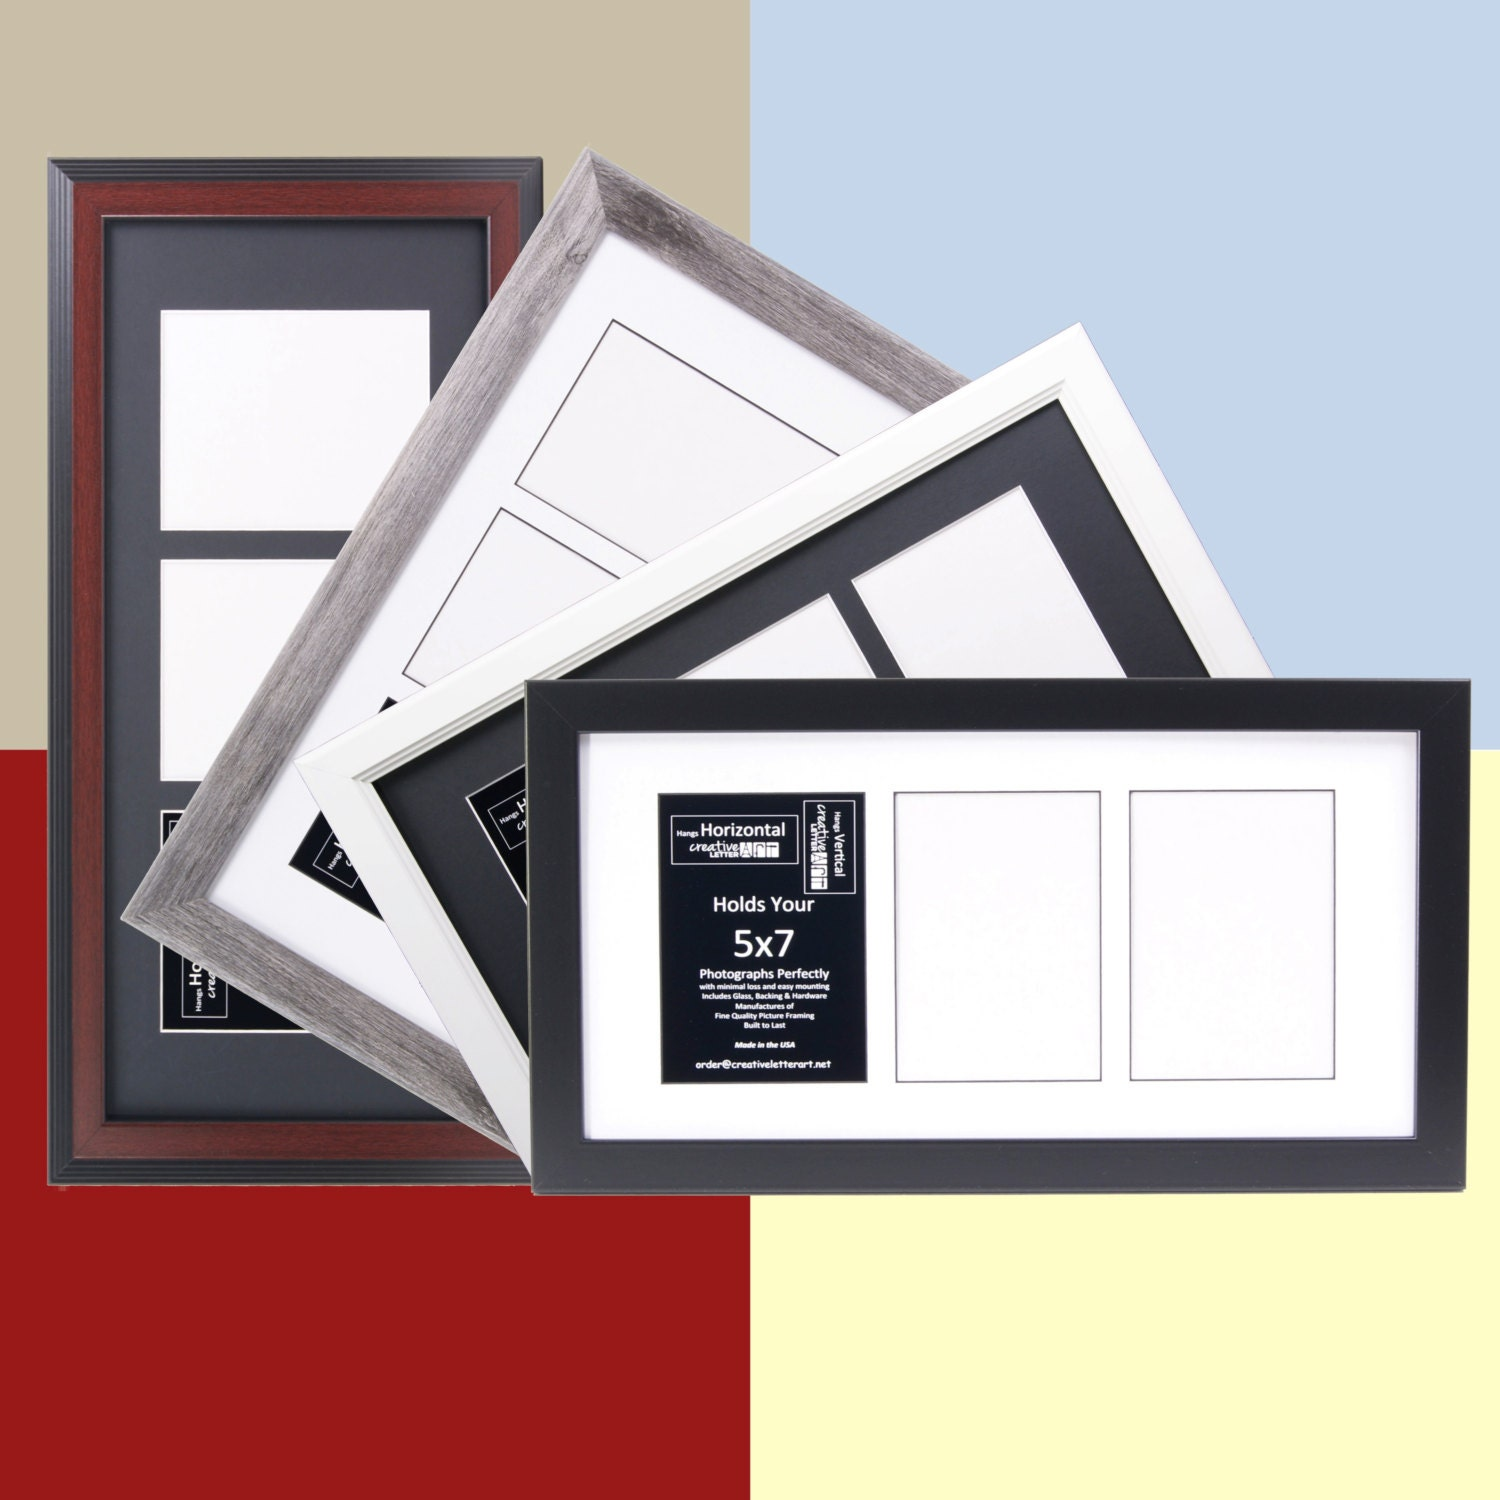 5x7 Multiple 3 Opening Picture Frames With 10x20 Collage Mat